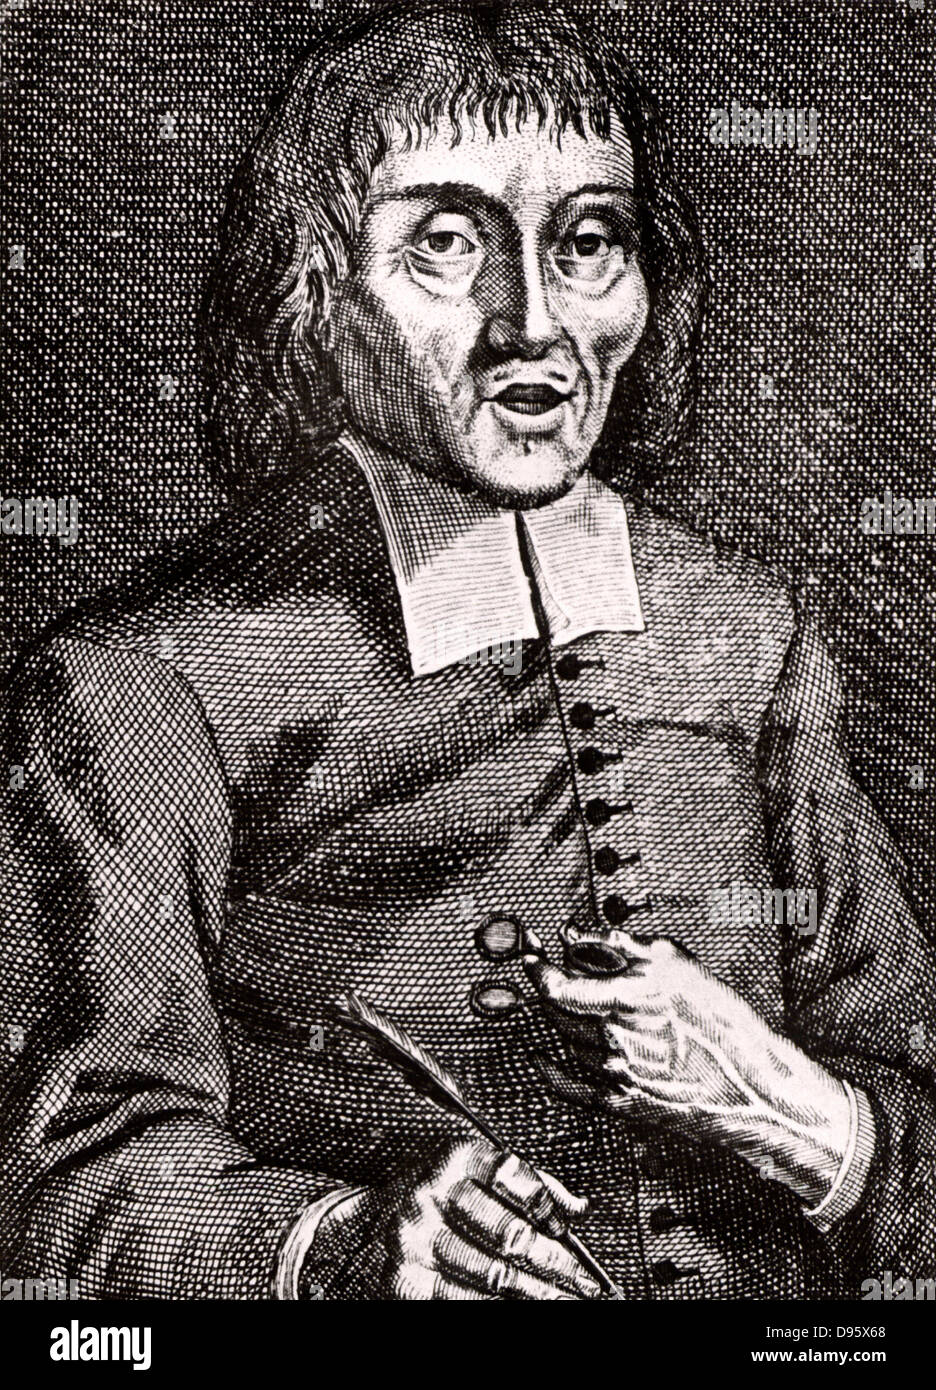 Jacob Brill (1639-1700) Dutch philosopher and follower of Spinoza.  Engraving from From 'Icones Virorum' - Stock Image